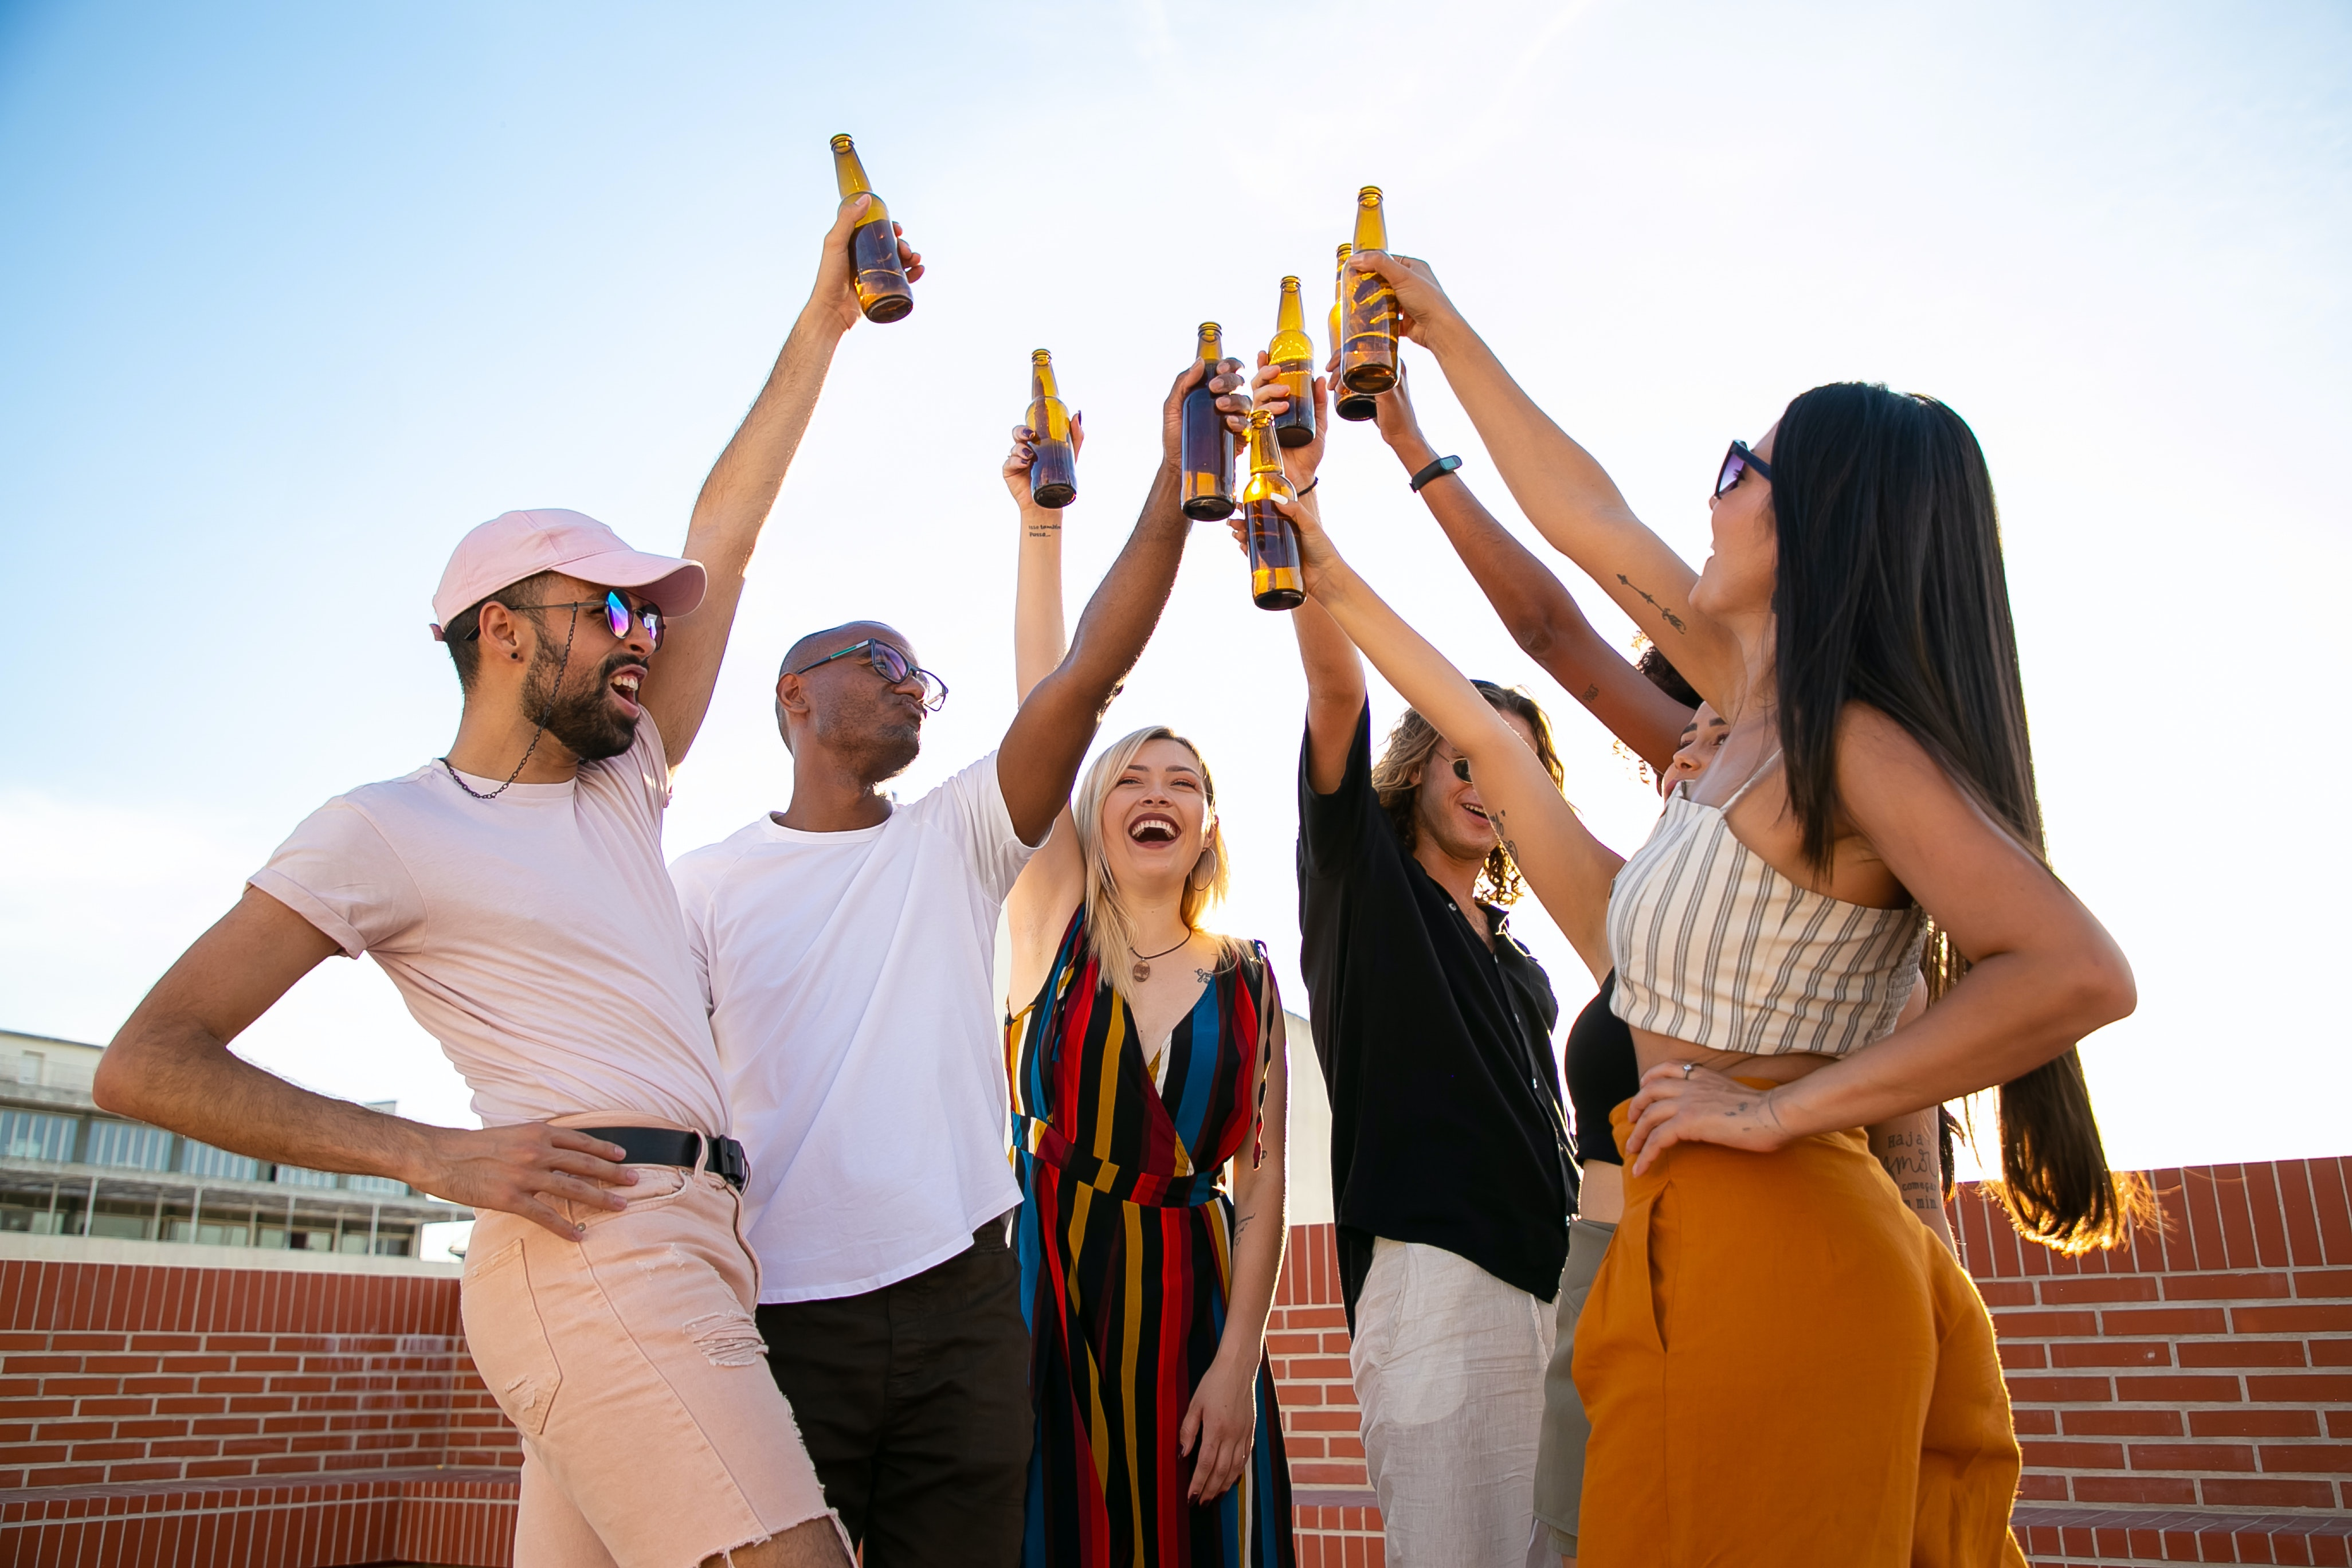 Celebrating people raising up their bottles with drinks